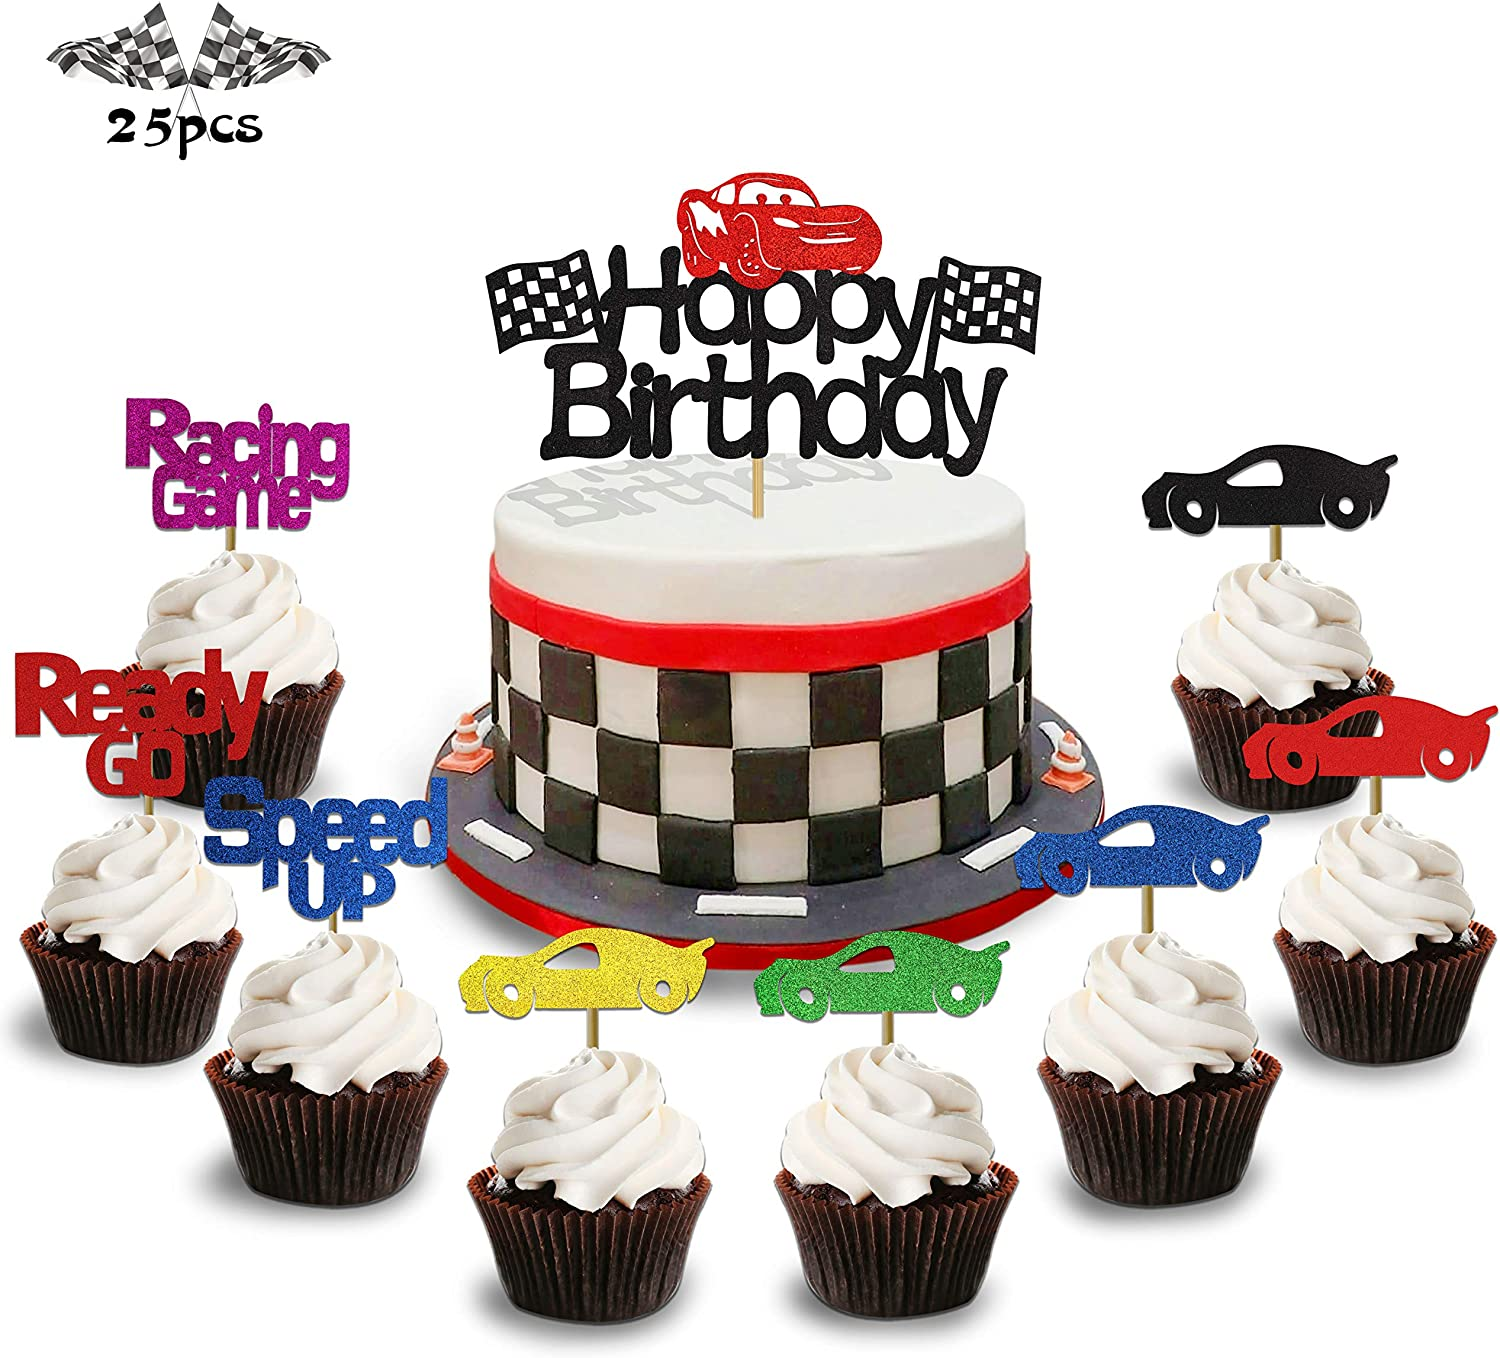 Pleasant Amazon Com Kapokku Set Of 25 Racing Car Glitter Cake Cupcake Funny Birthday Cards Online Elaedamsfinfo